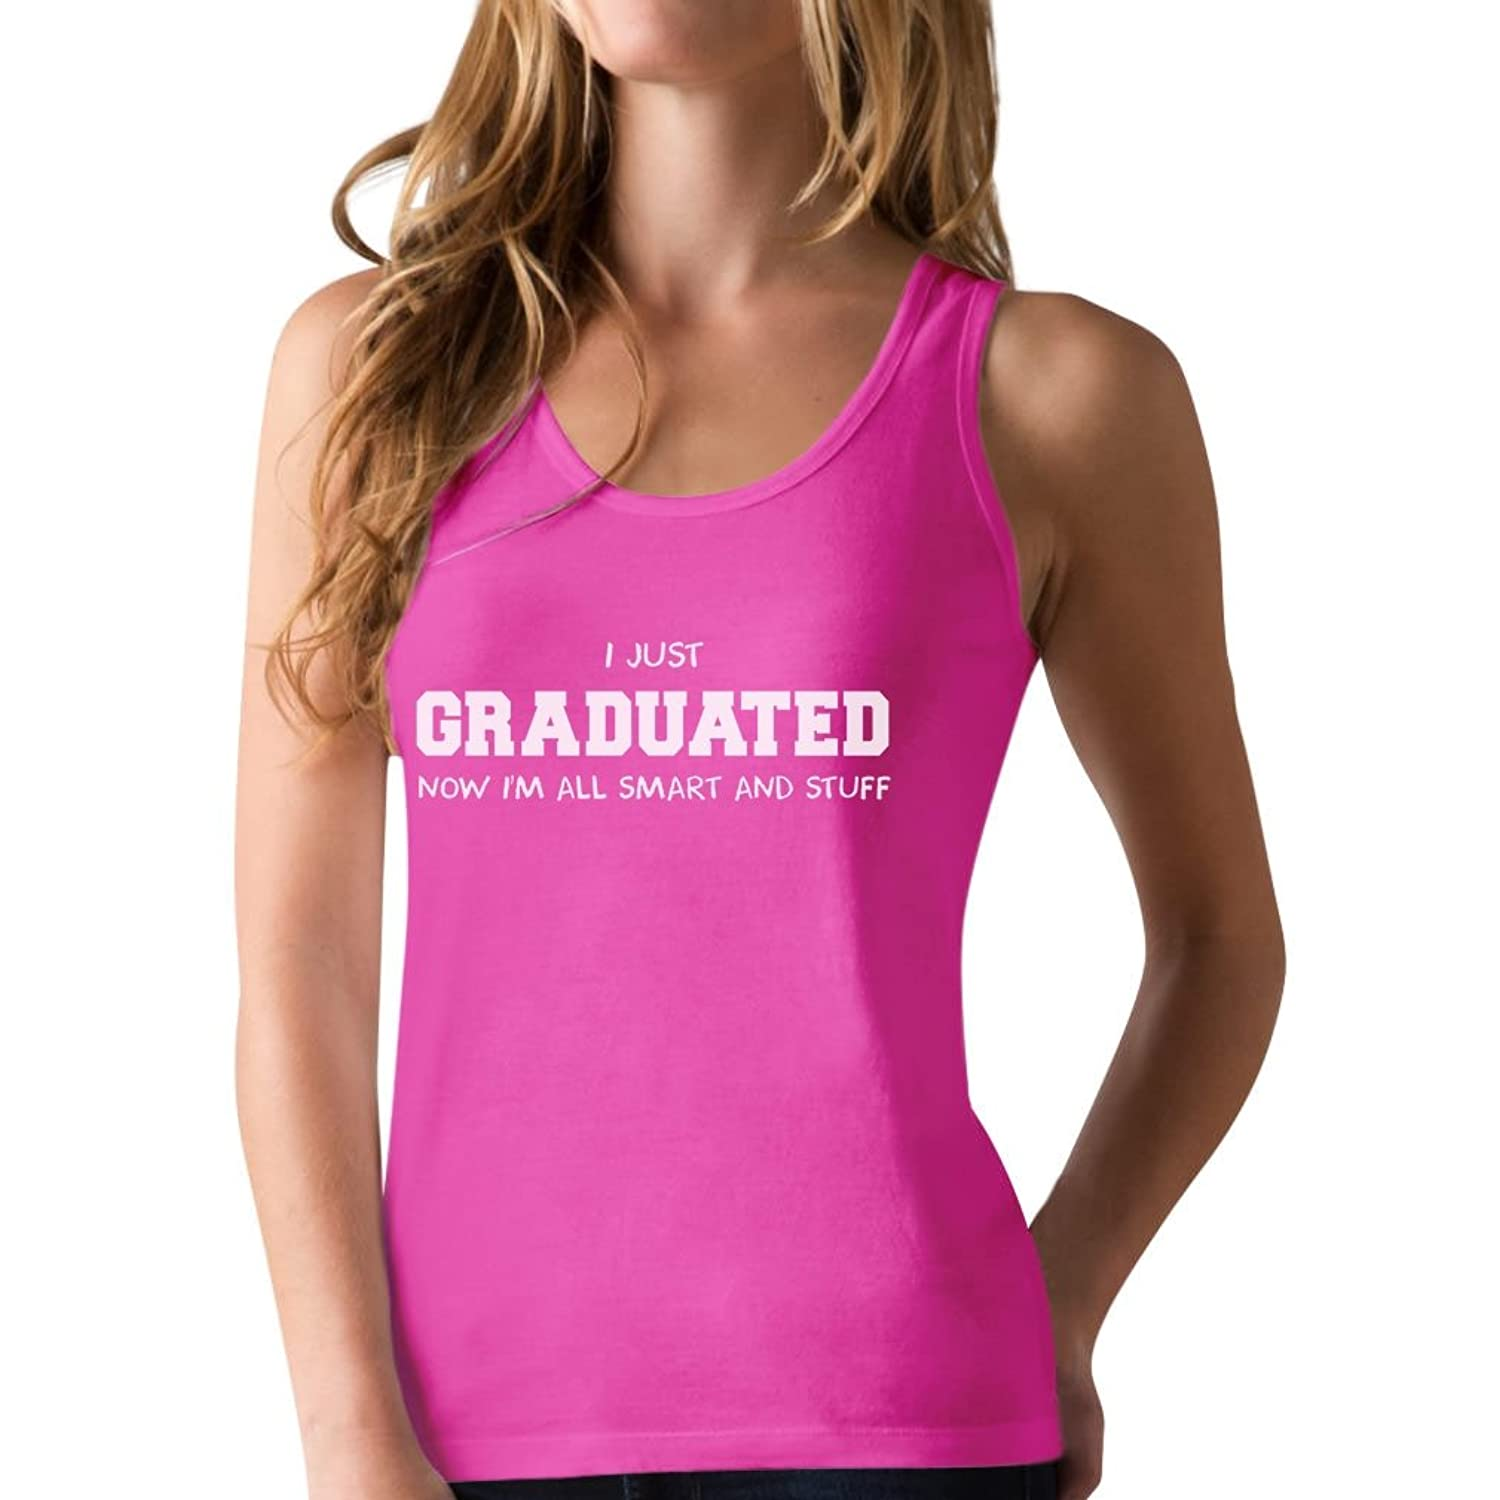 I Just Graduated Now I'm All Smart And Stuff - Funny Racerback Tank Top